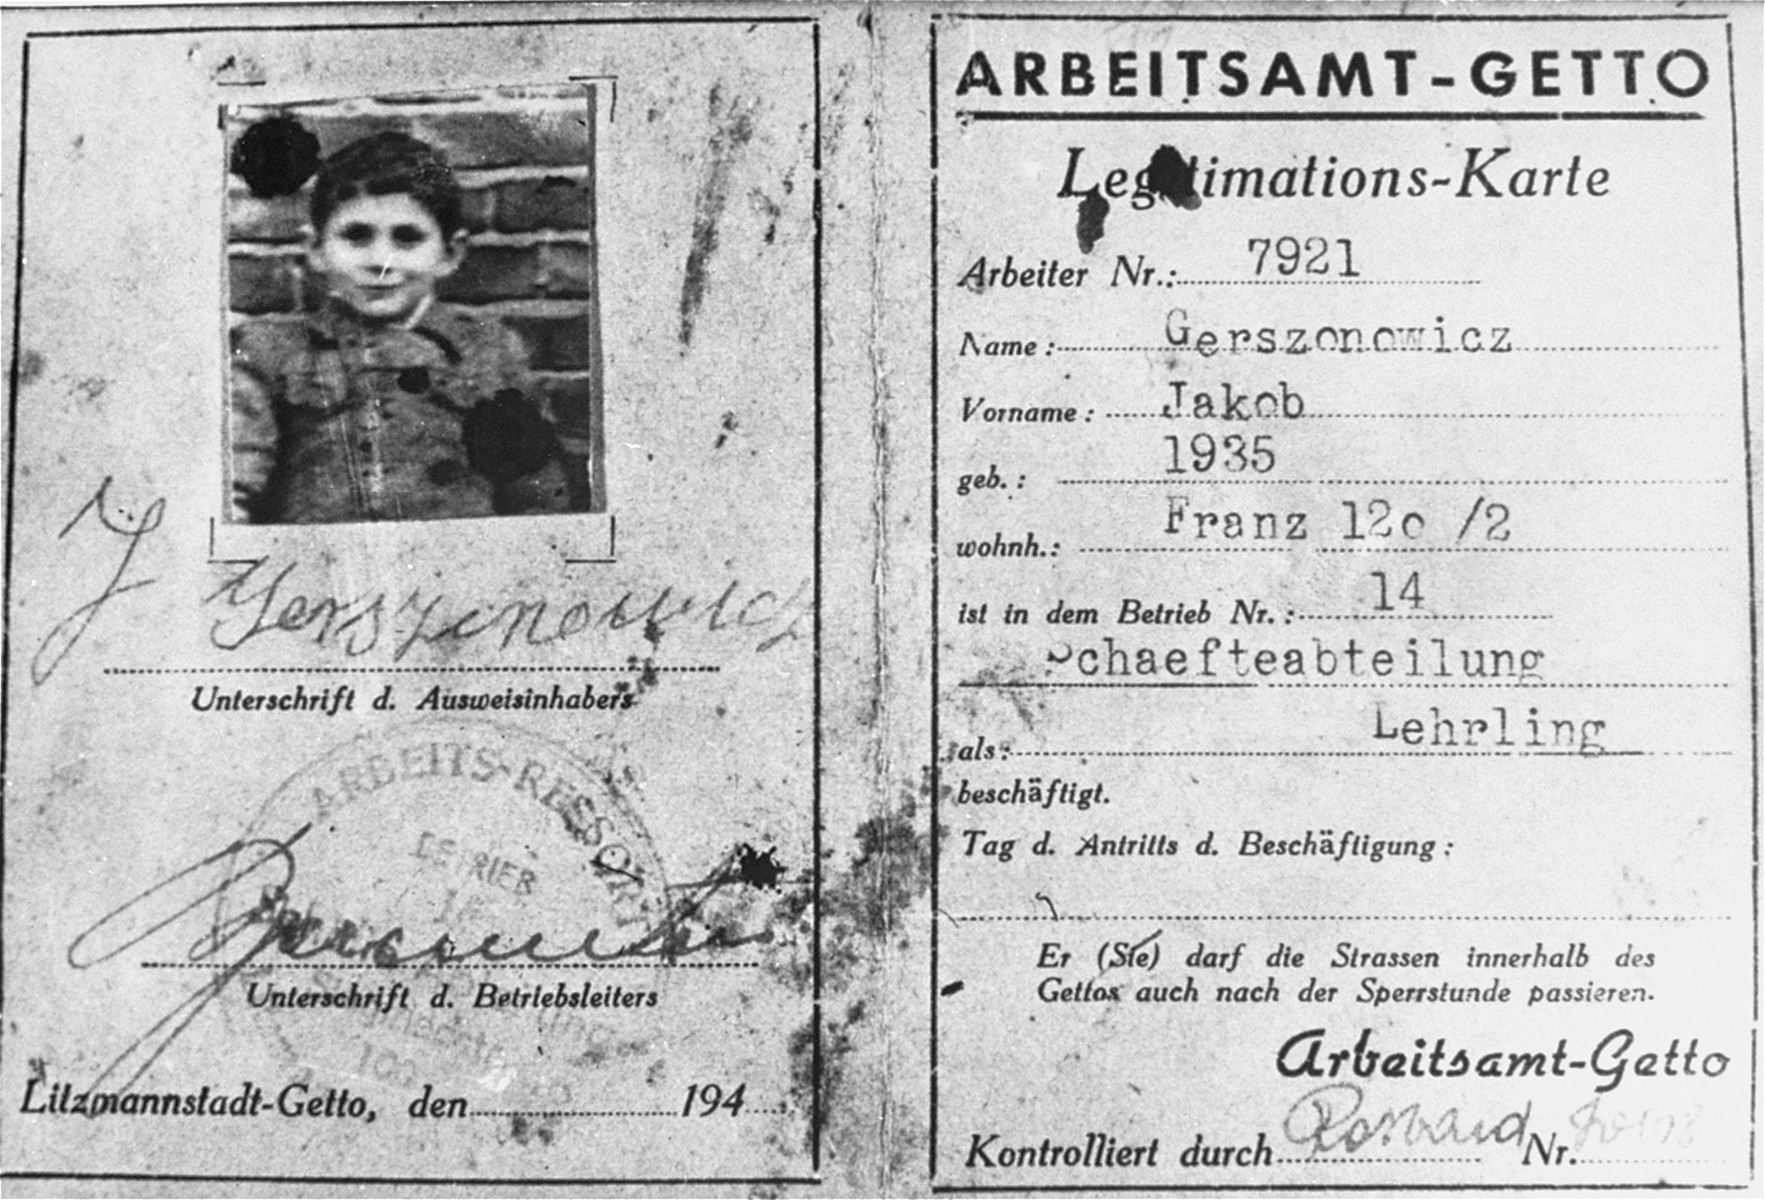 A work permit issued in the Lodz ghetto to Jakob Gerszonowicz, authorizing him to be an apprentice in the feather resort.